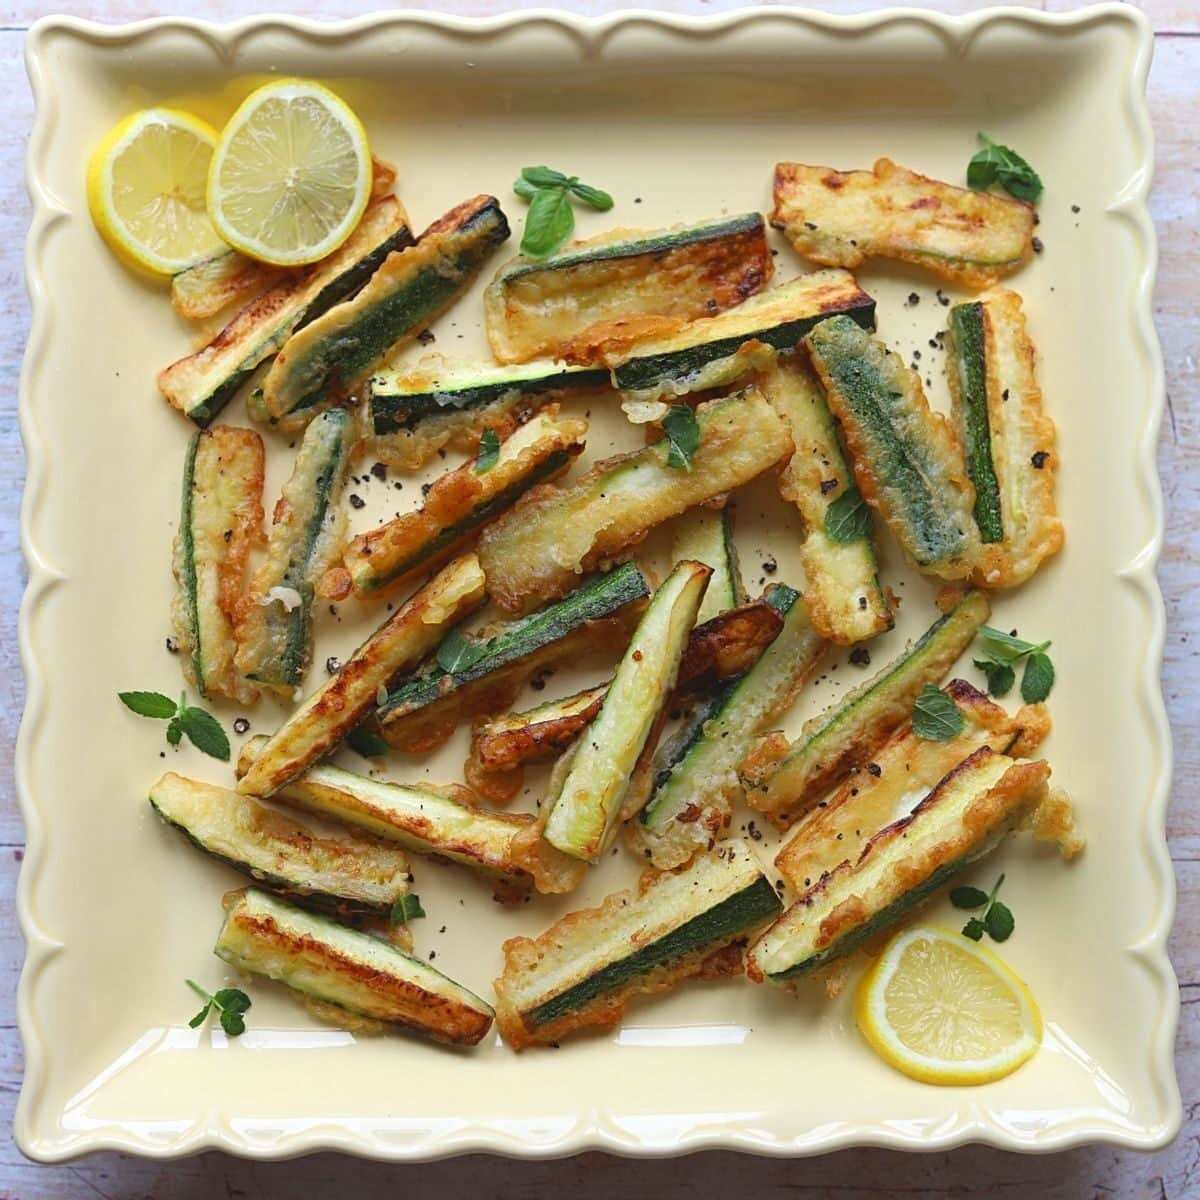 Fried zucchini chips on a large yellow platter with sliced lemon and fresh mint.